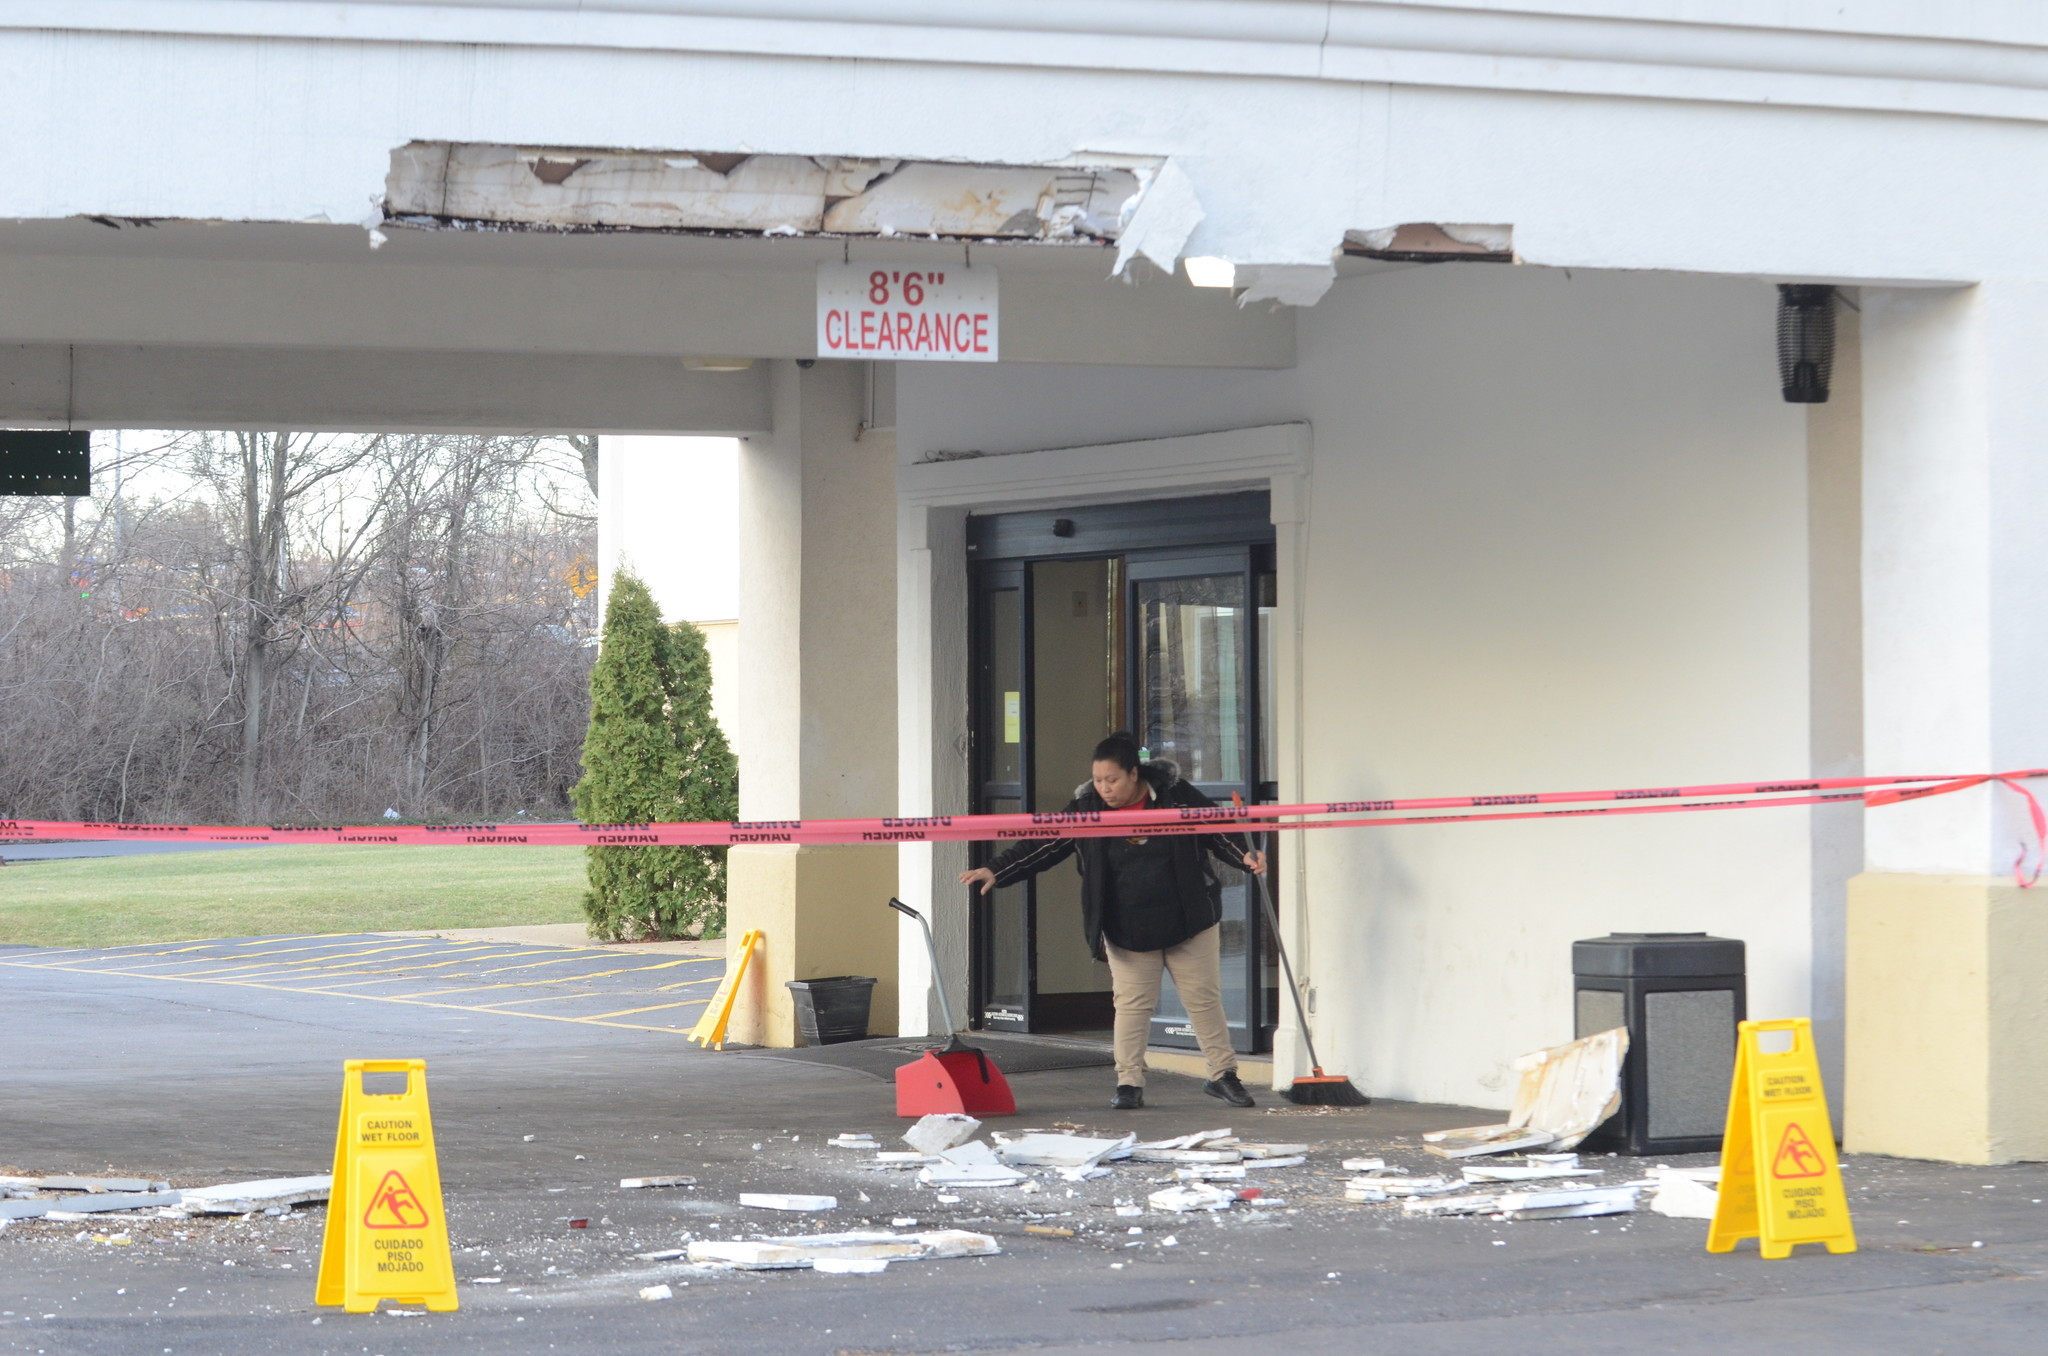 Truck hits Palmer hotel overhang - The Morning Call